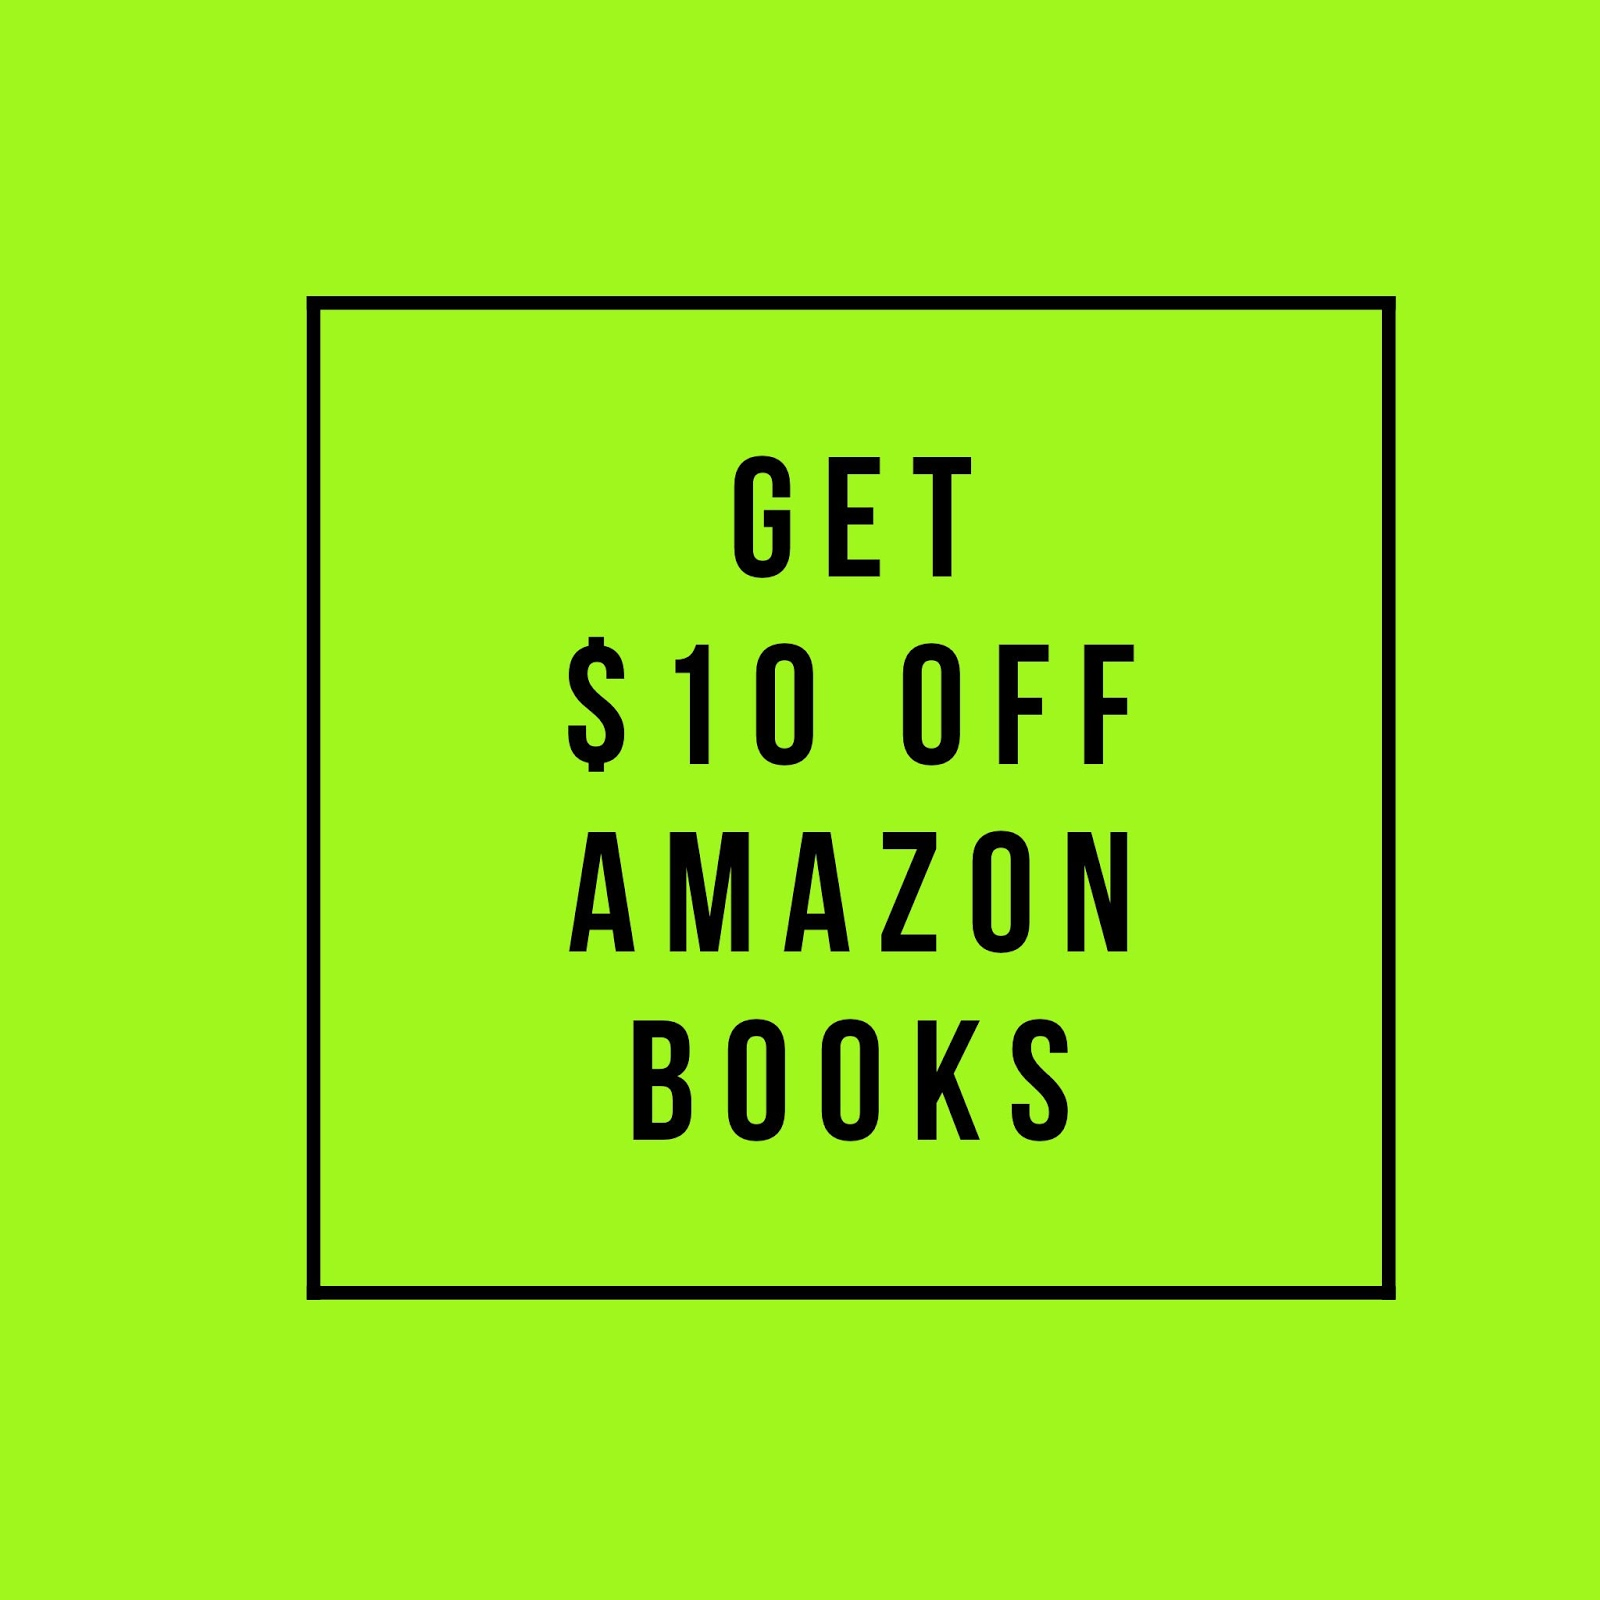 Amazon books discount coupon